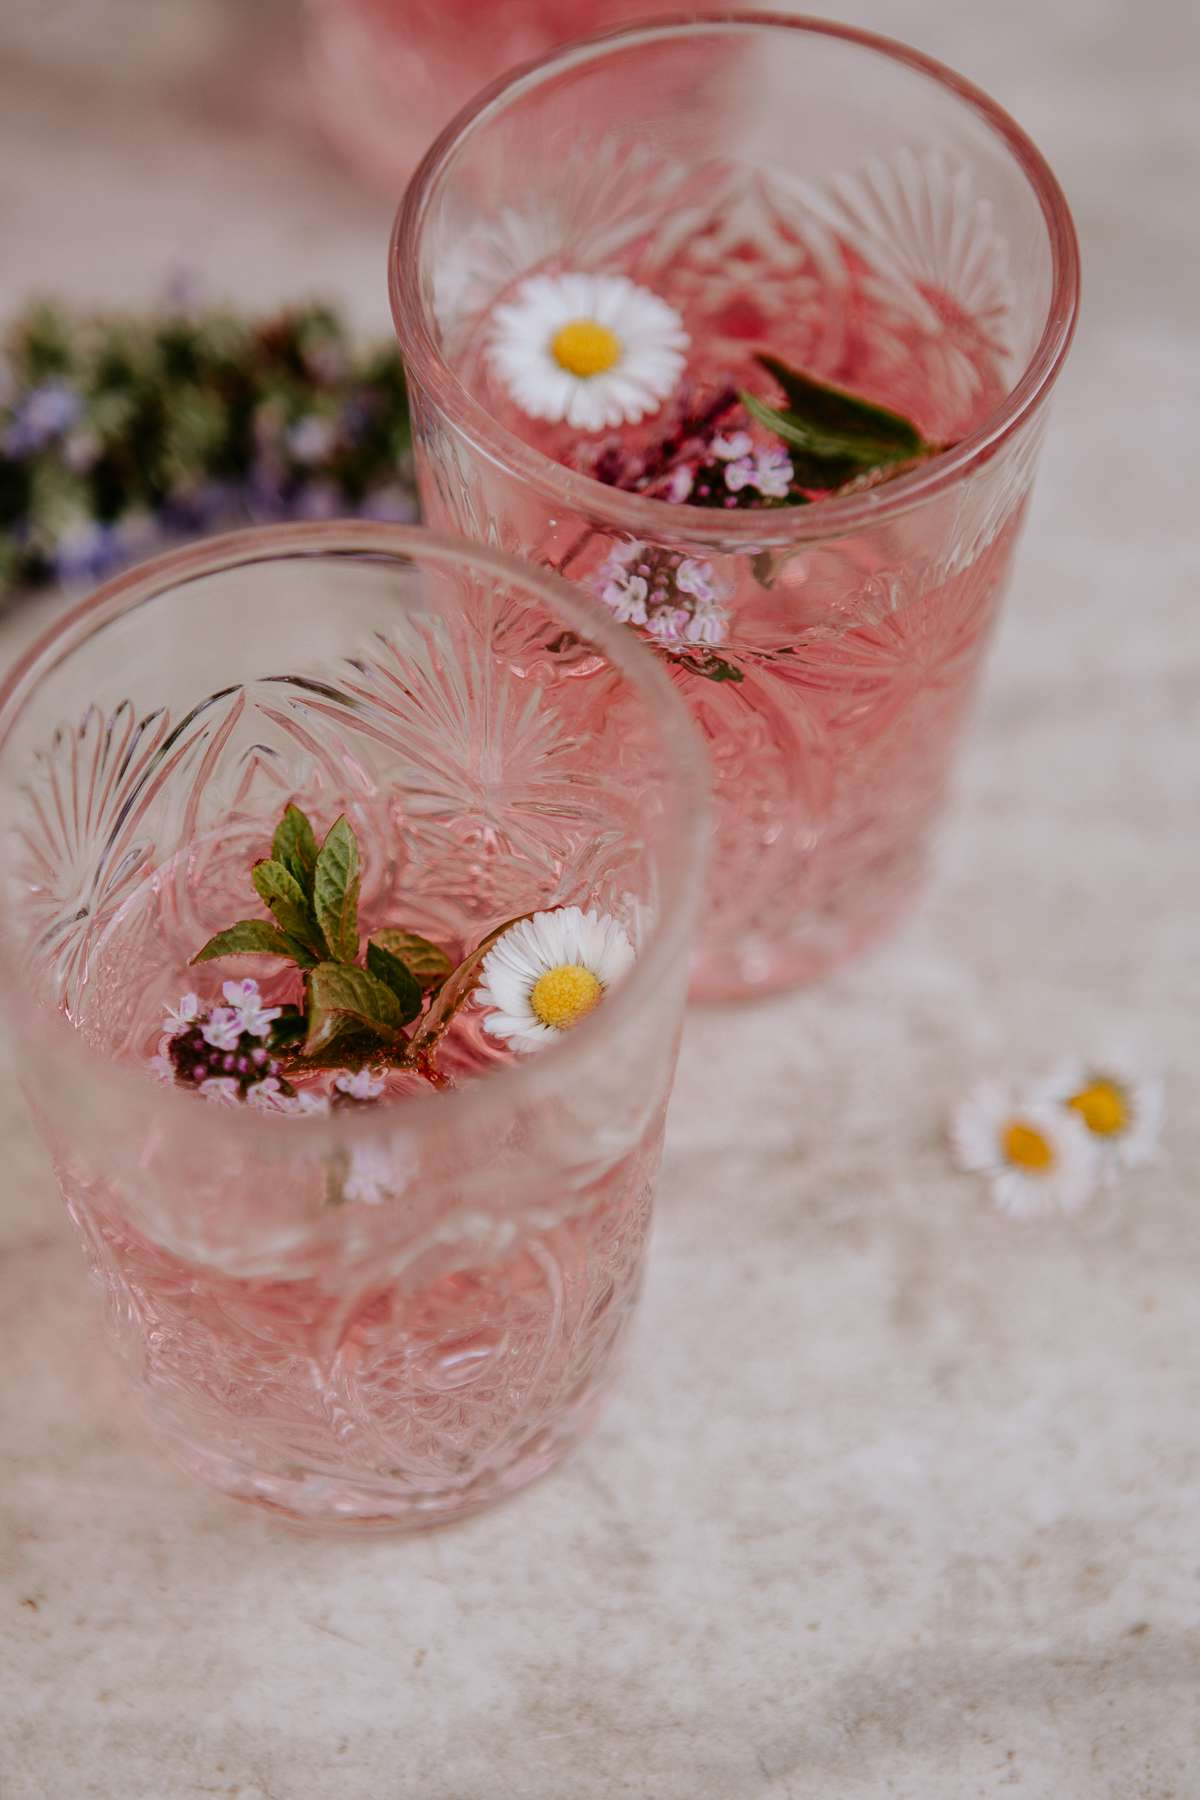 cocktails with flowers